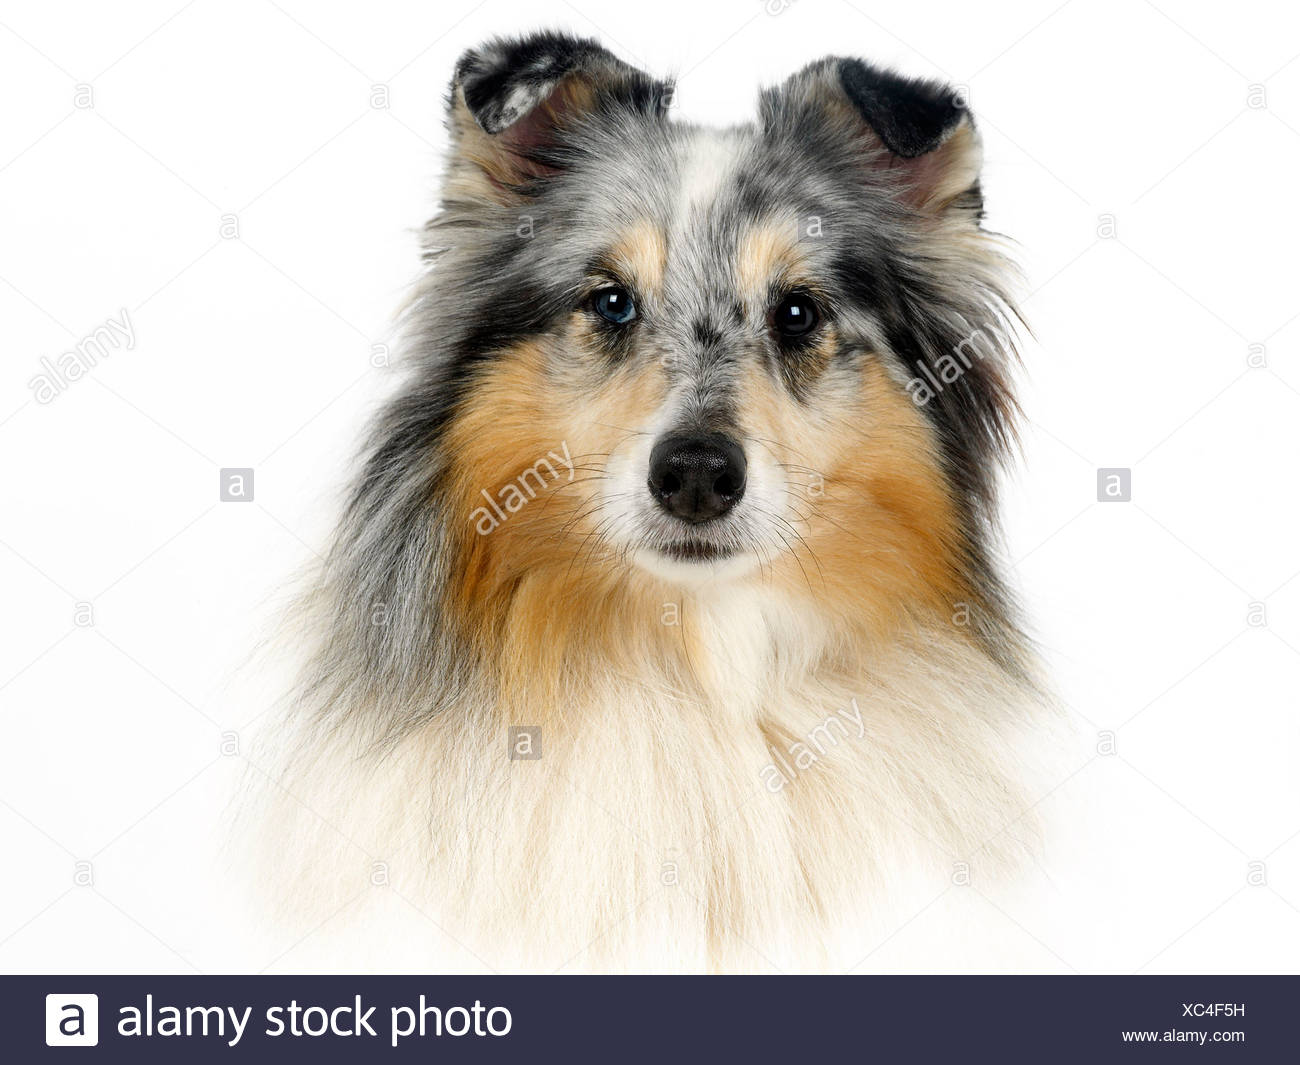 A portrait of a blue merle collie. - Stock Image